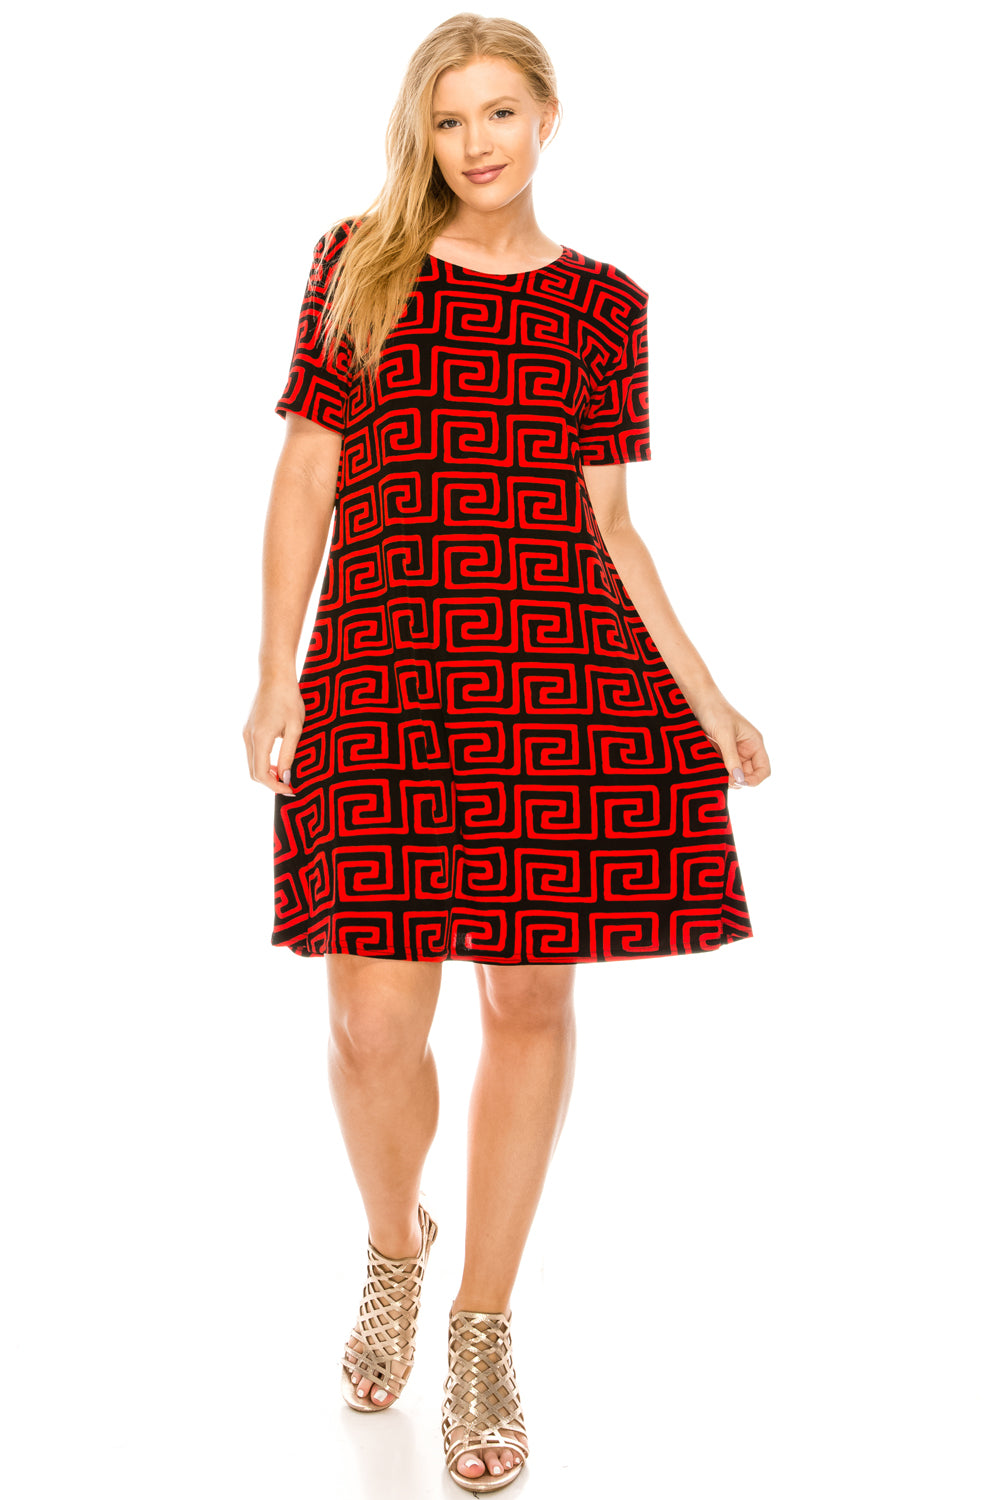 Jostar Women's Stretchy Missy Dress Short Sleeve Print, 704BN-SP-W187 - Jostar Online